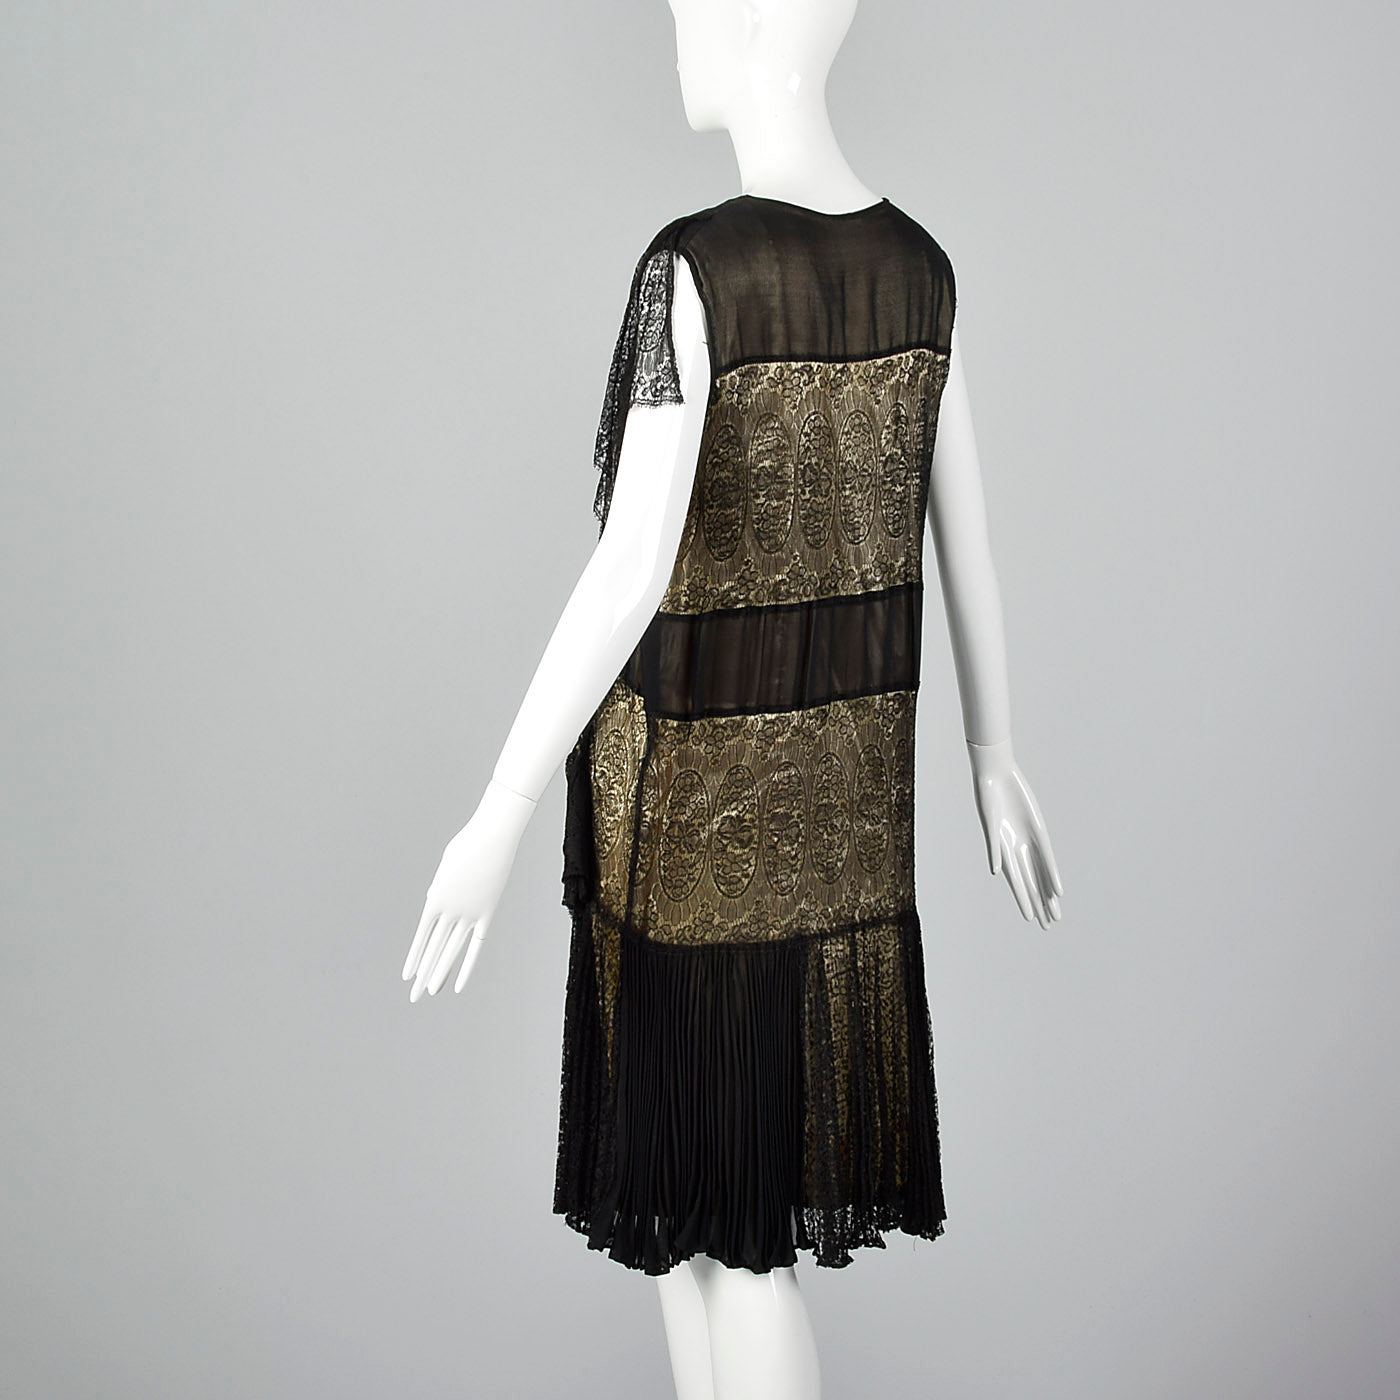 1920s Gorgeous Black Lace Overlay Dress